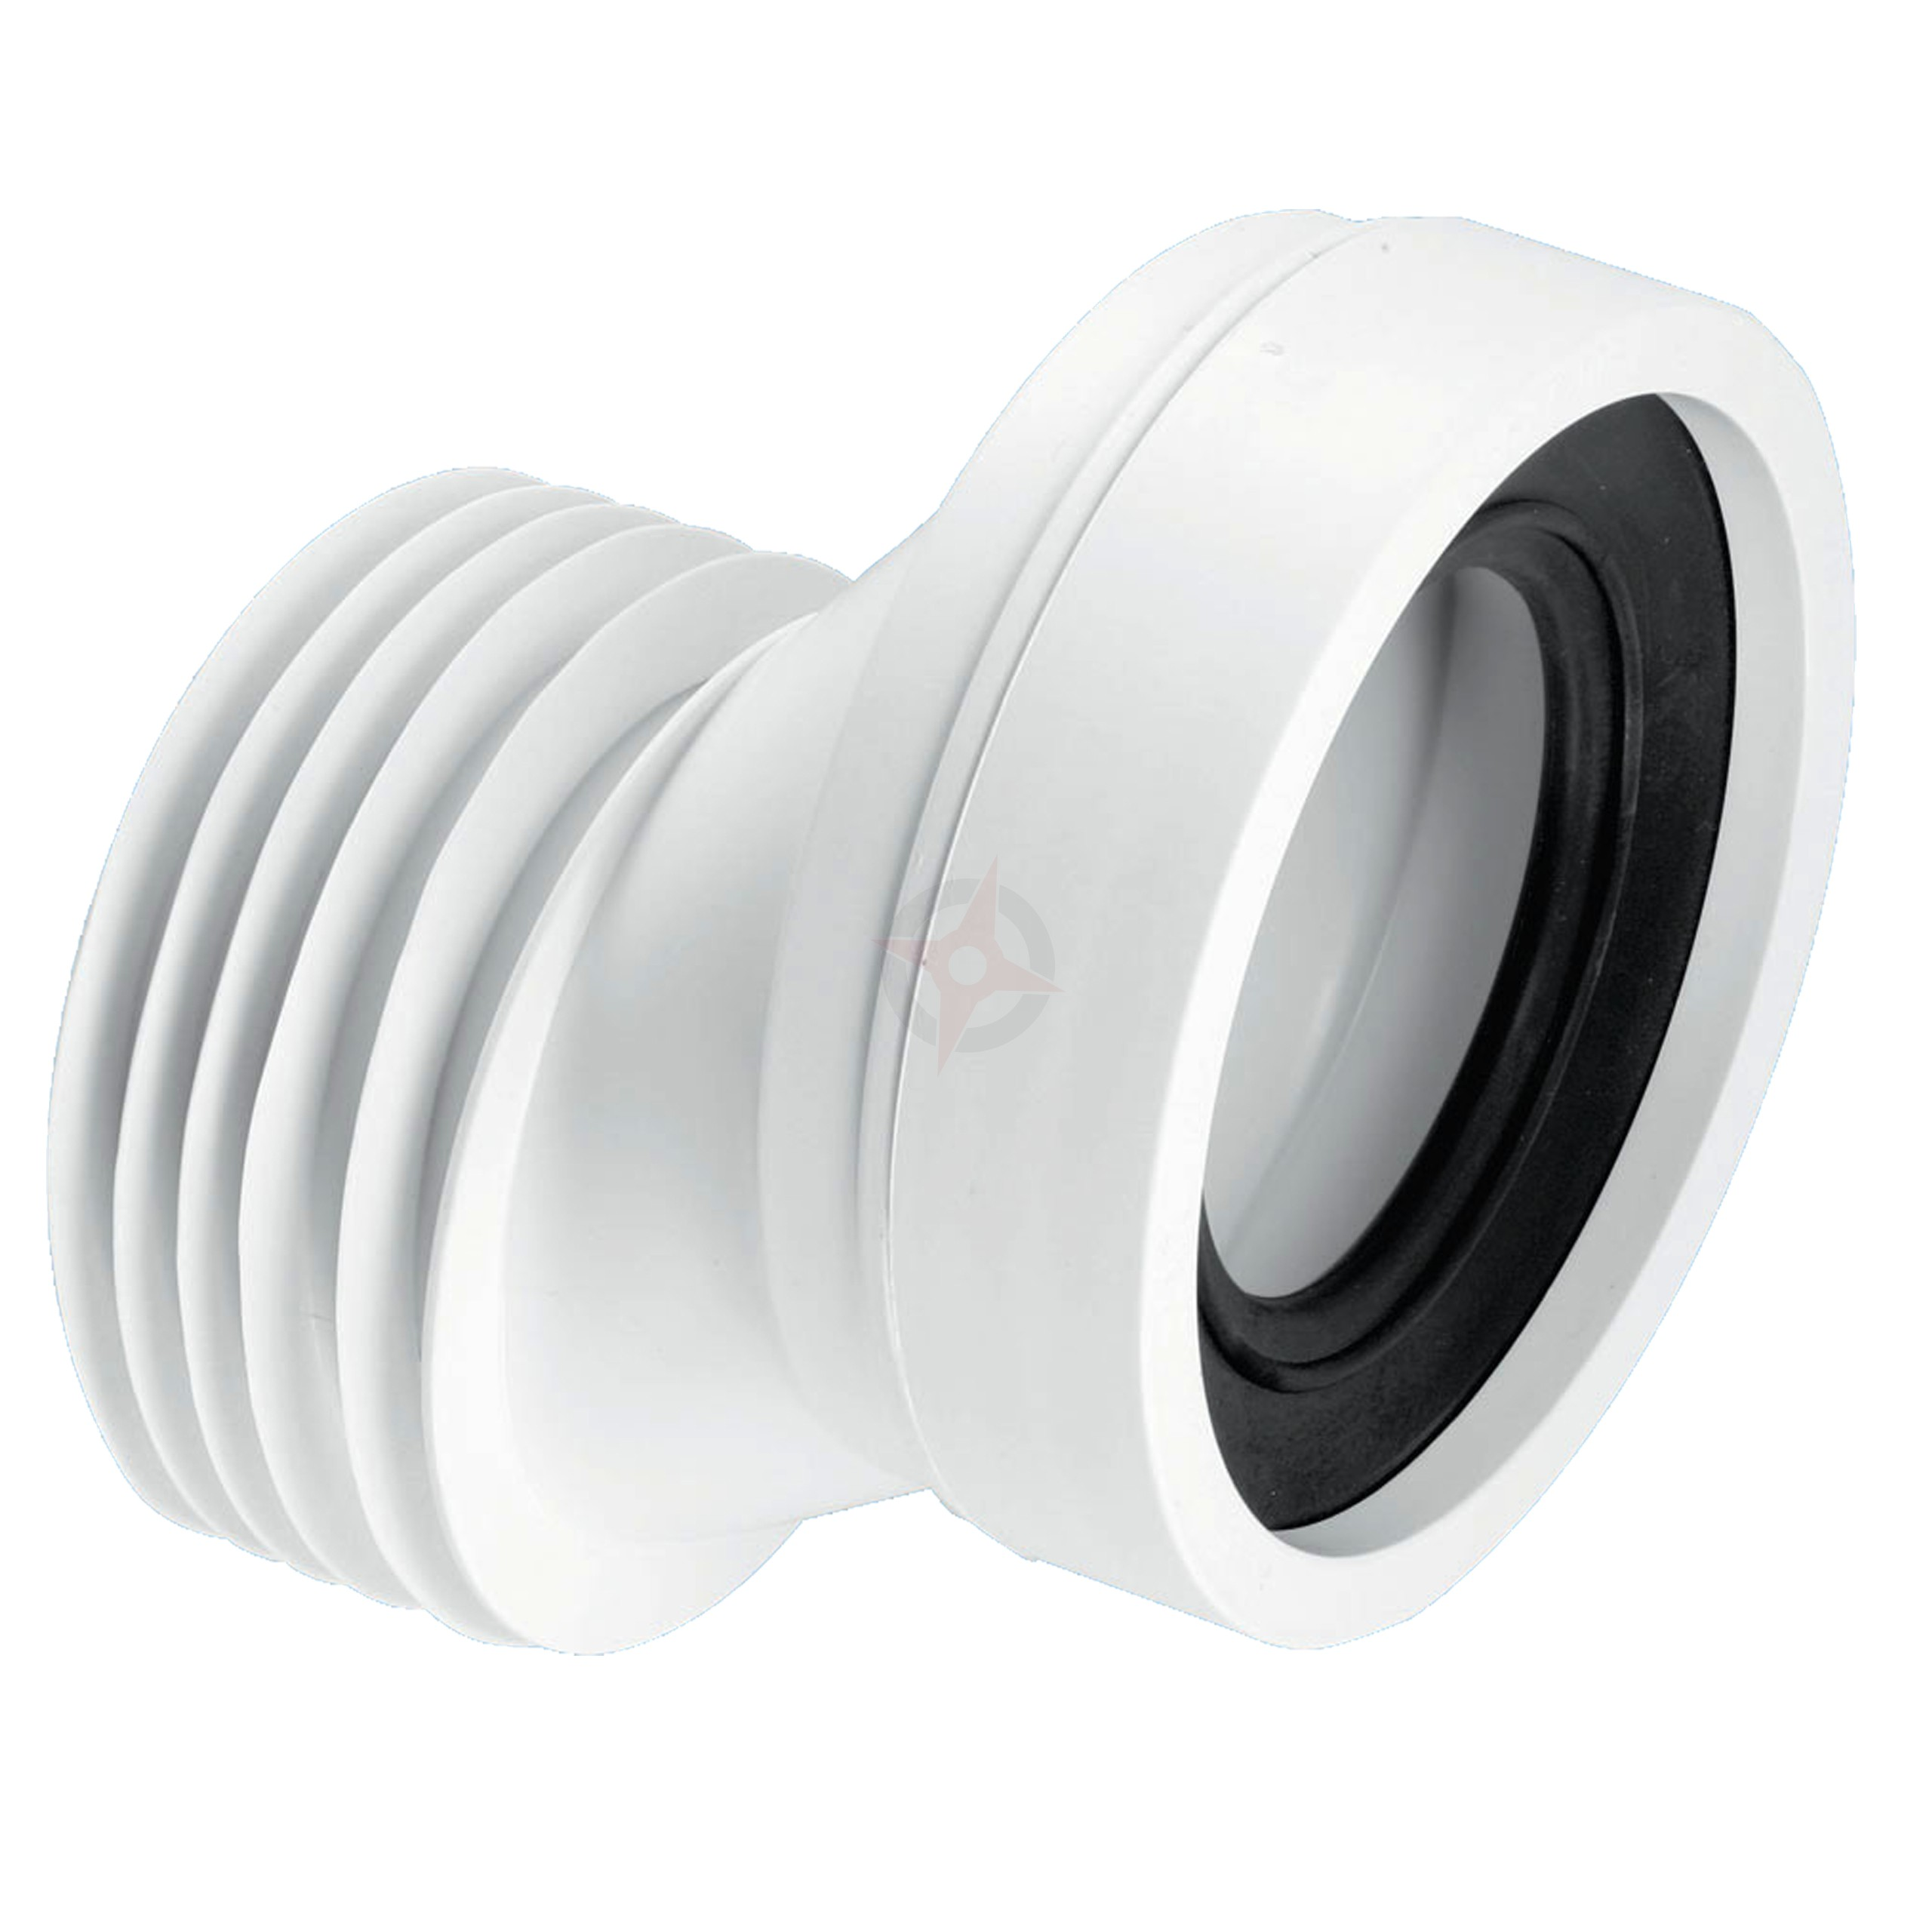 McAlpine 110mm Outlet x 40mm Offset Pan Connector WC-CON4A